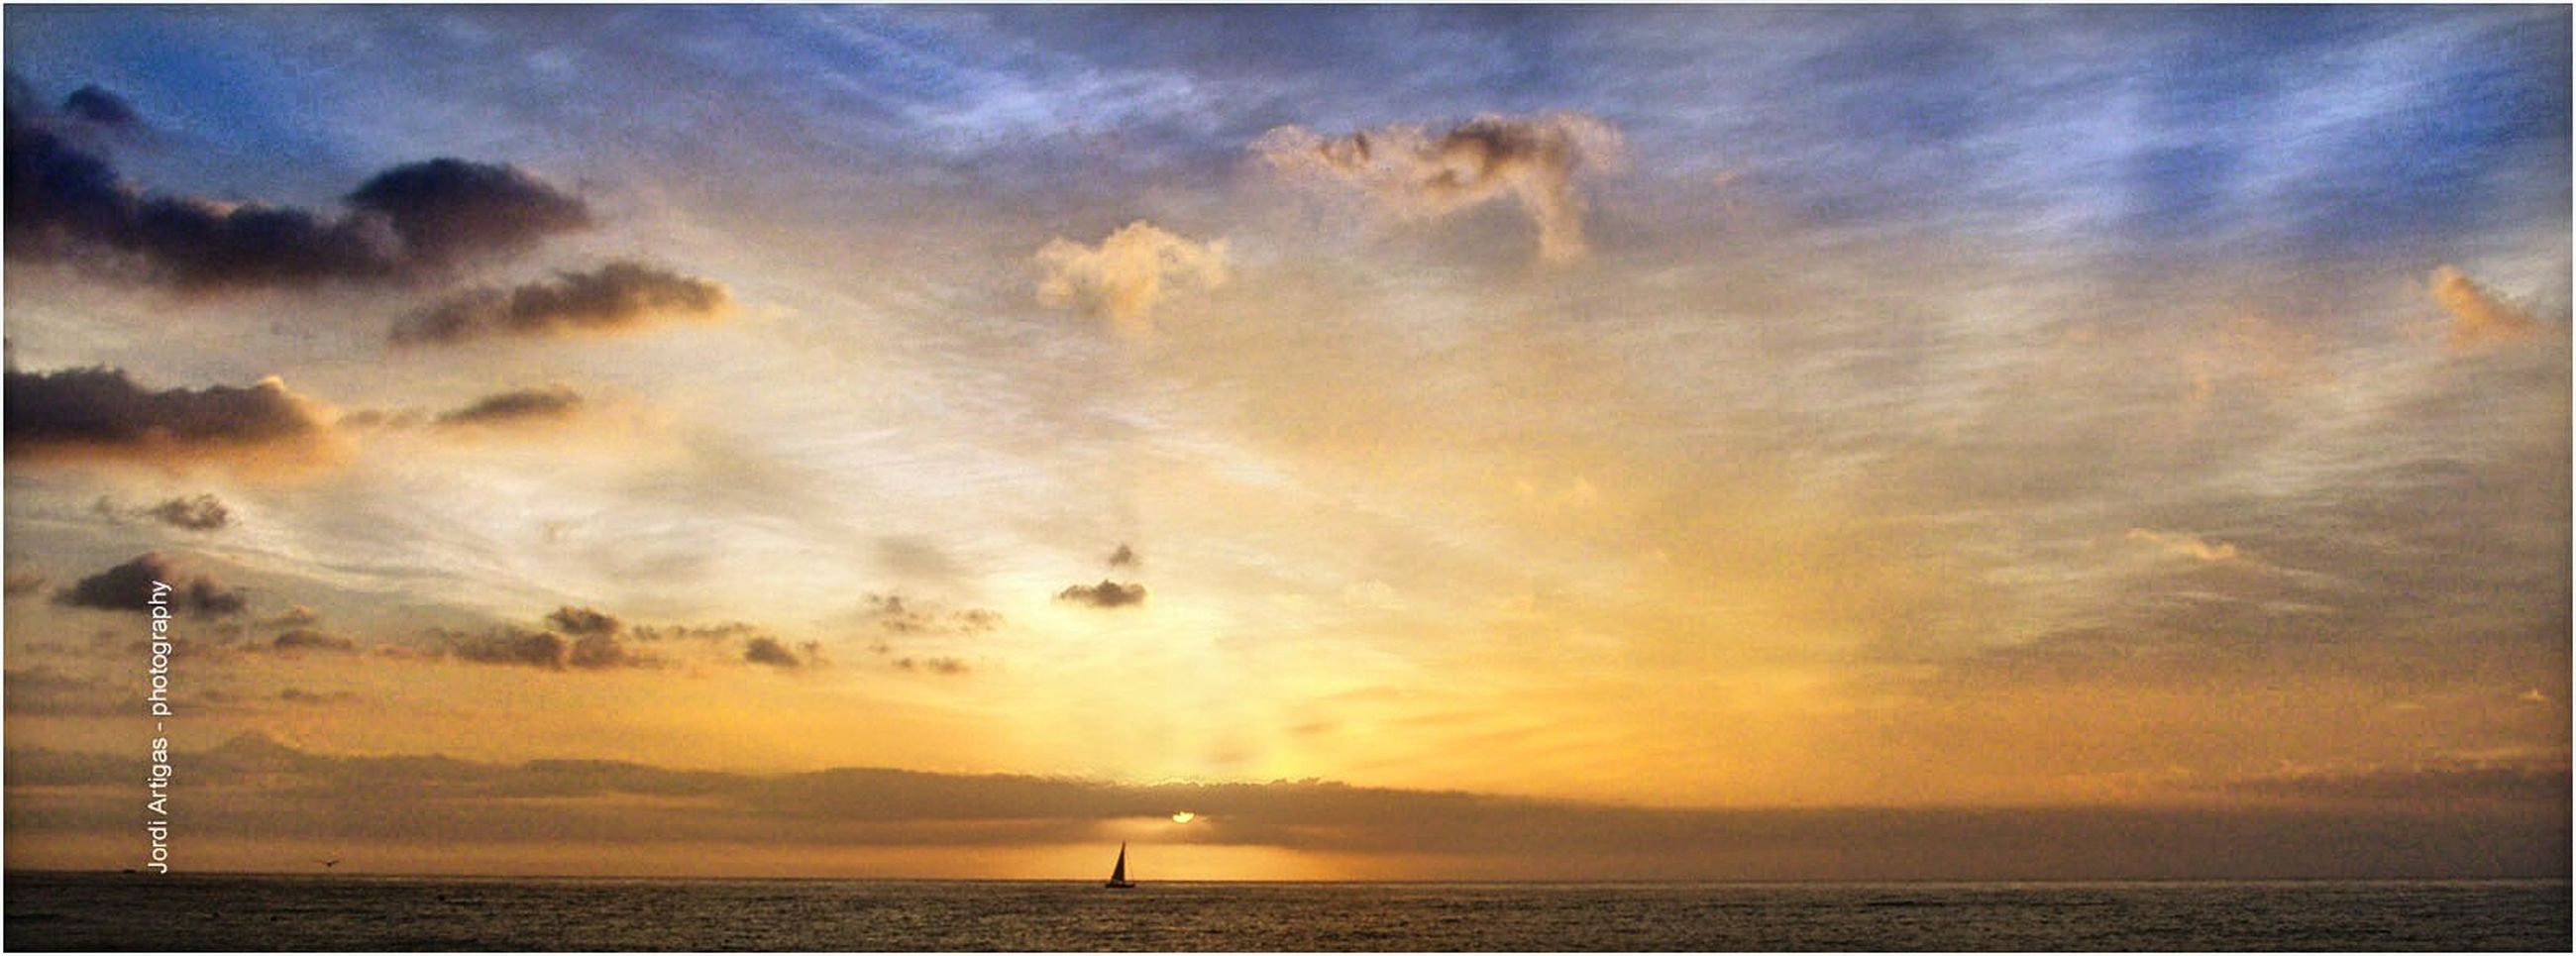 sunset, sky, sea, scenics, water, beauty in nature, tranquil scene, tranquility, horizon over water, cloud - sky, silhouette, idyllic, nature, orange color, cloud, cloudy, waterfront, sun, dramatic sky, outdoors